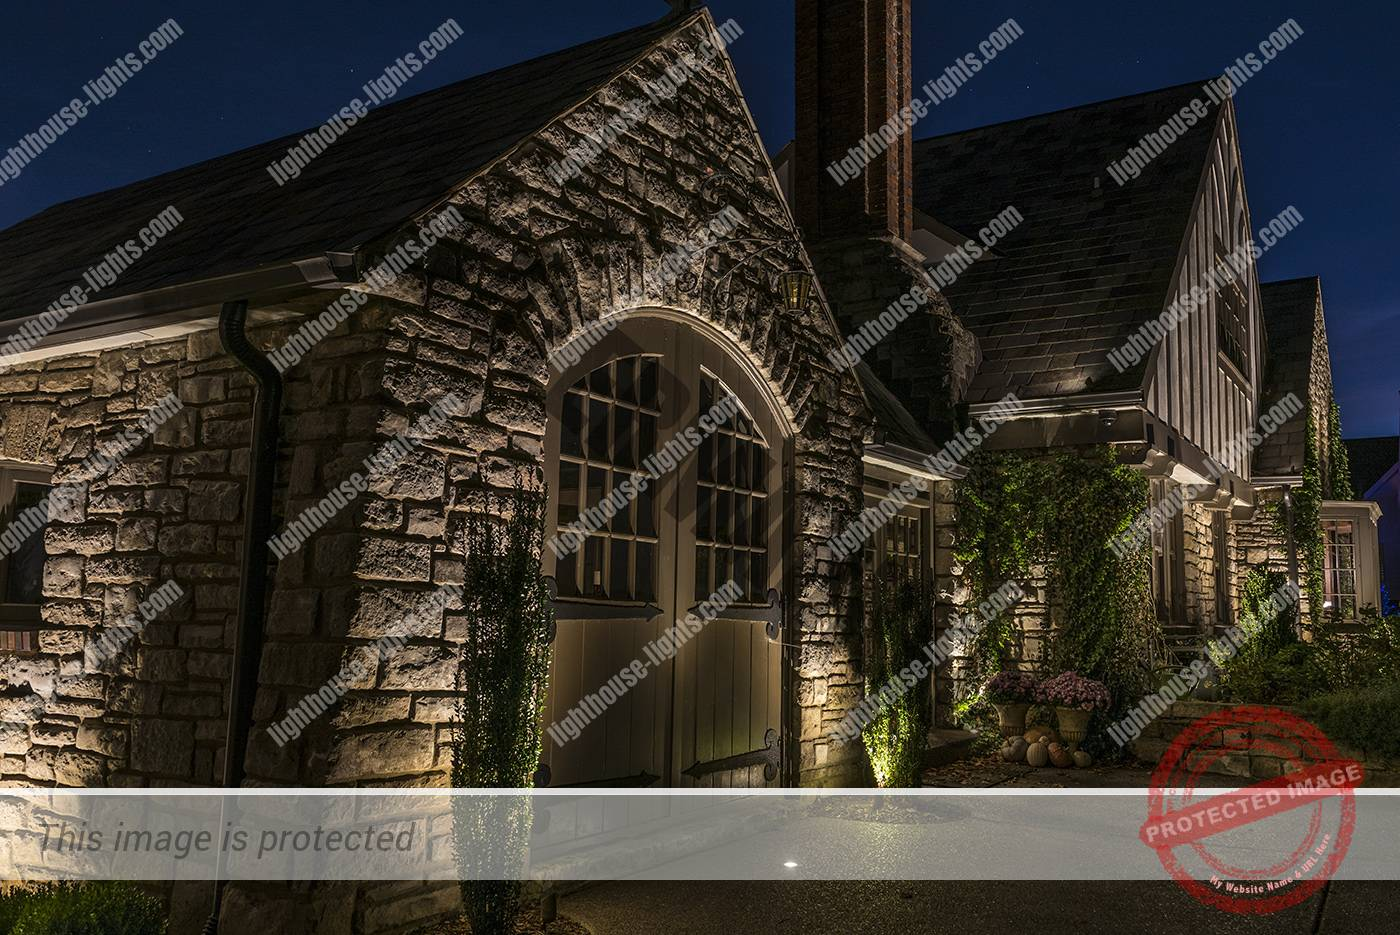 Lighting on Stone Carriage House